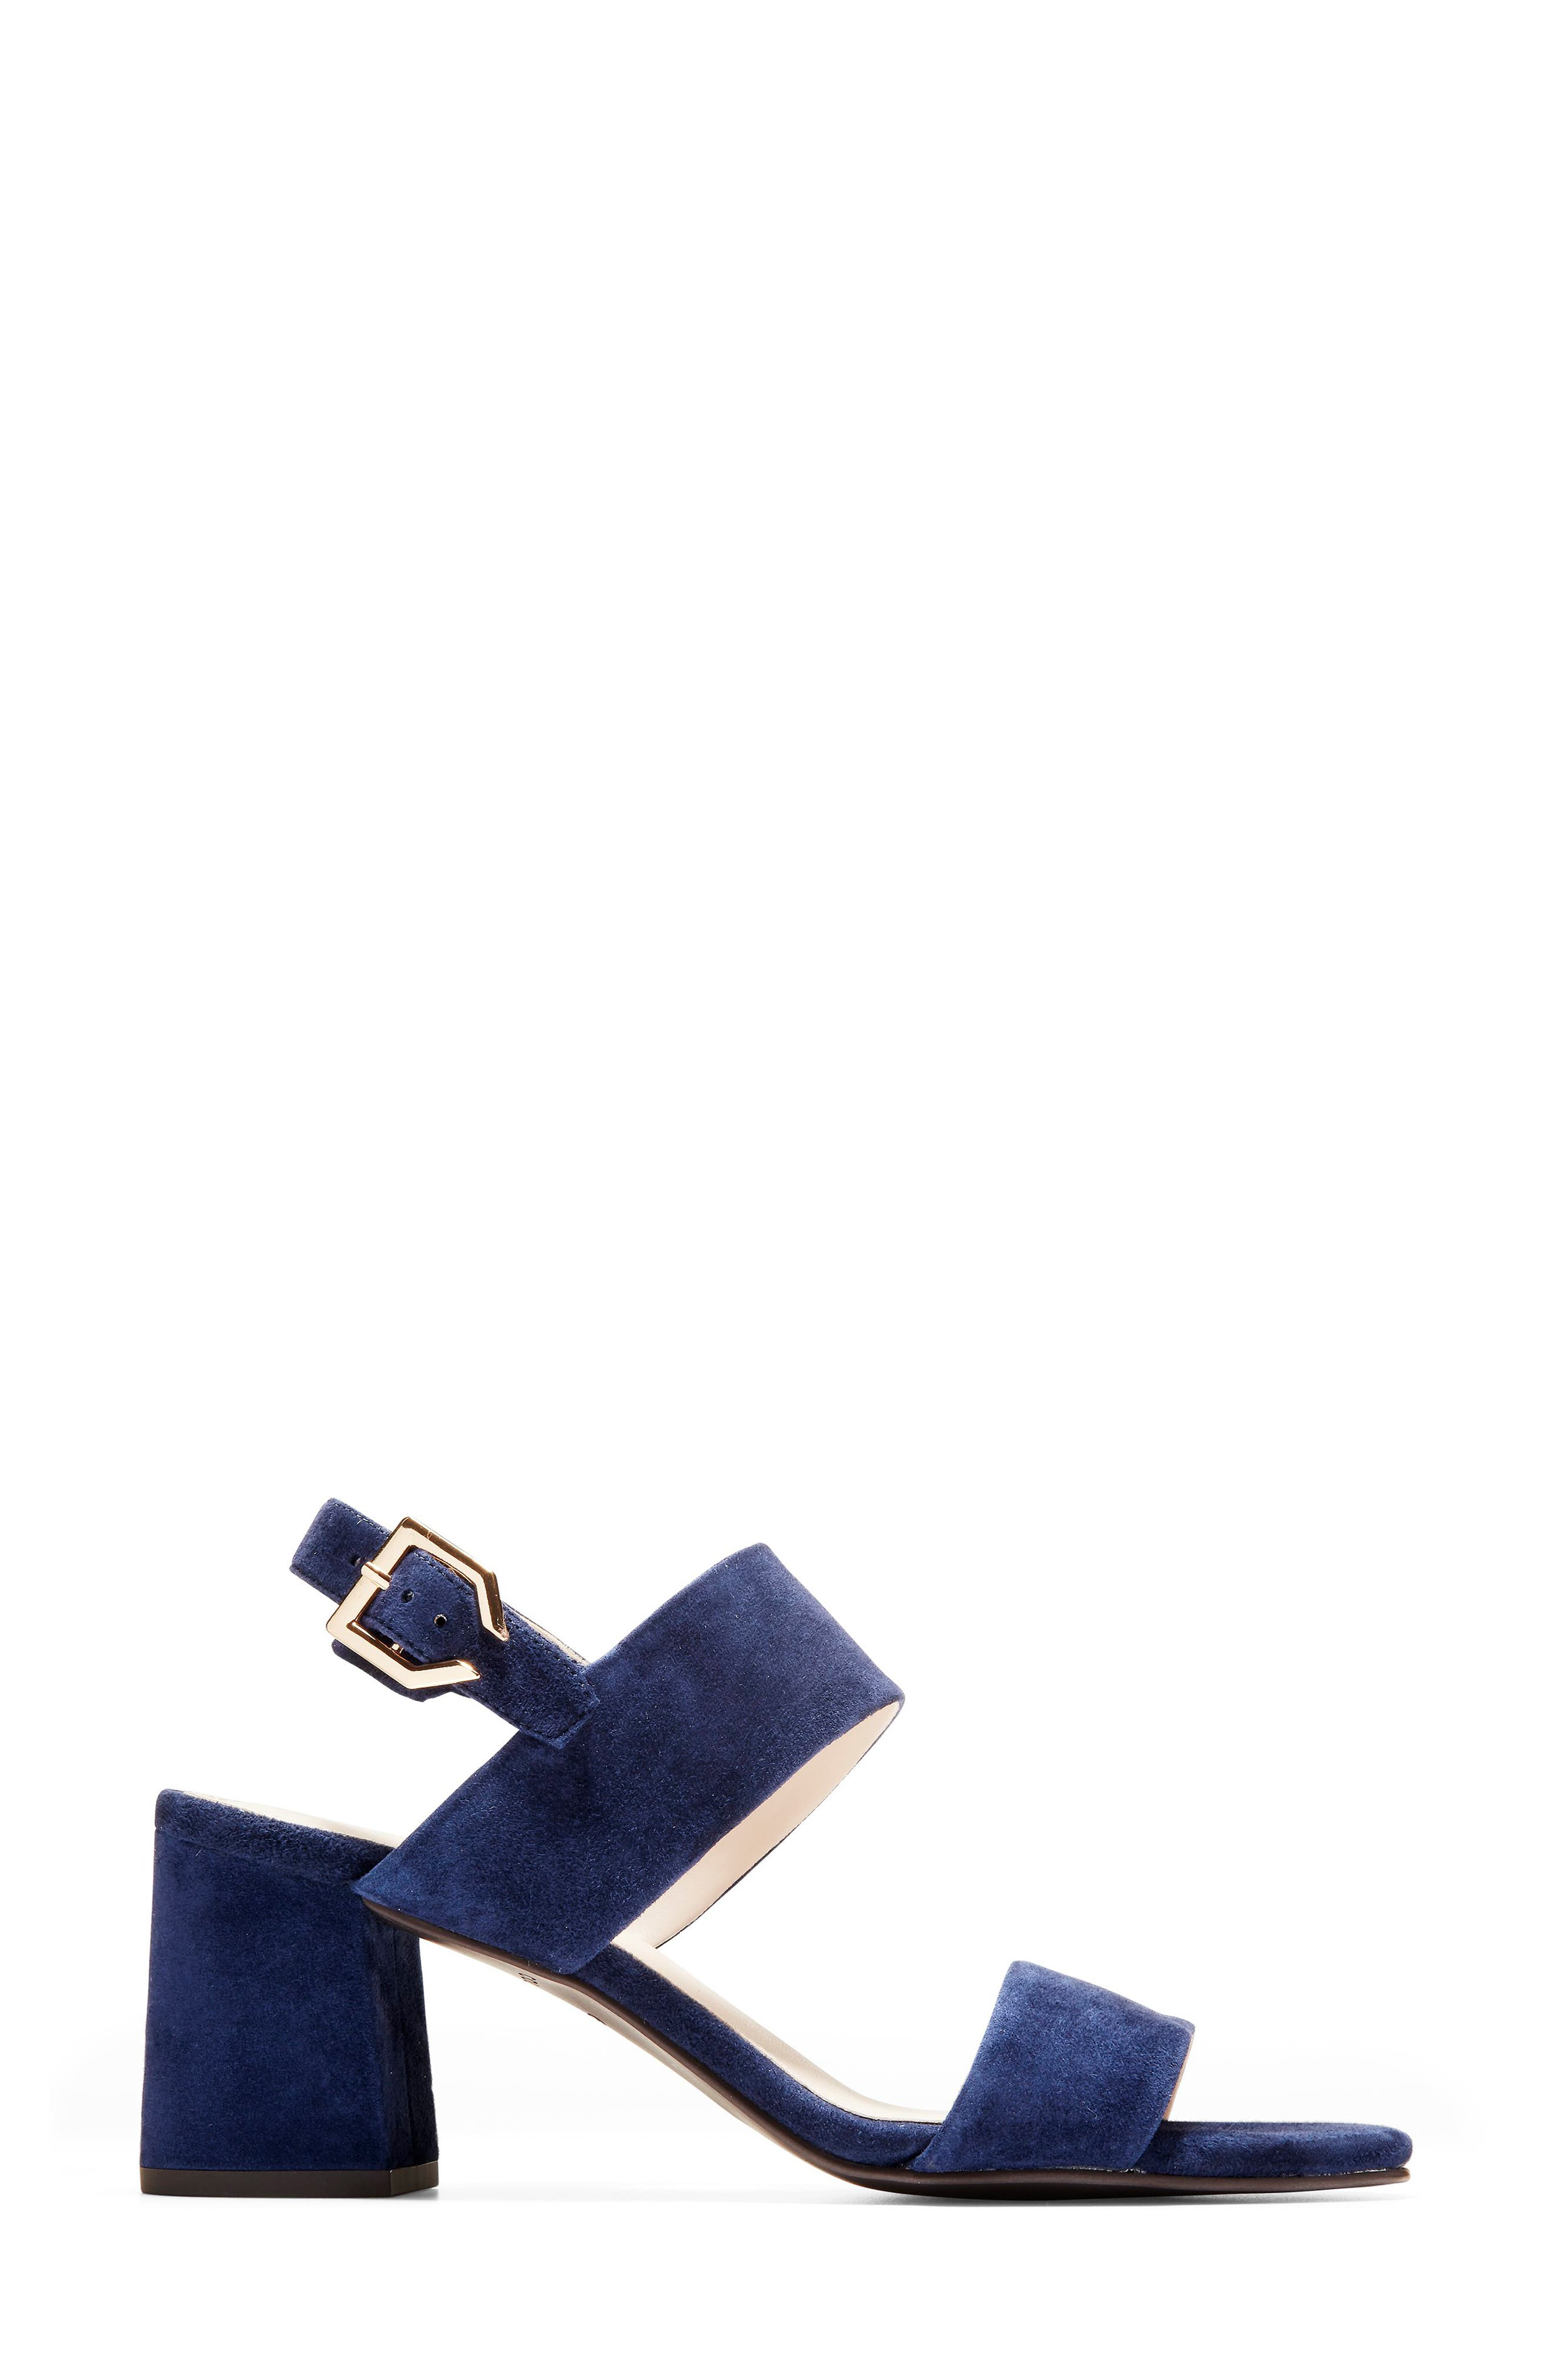 Avani Block Heel Sandal,                             Alternate thumbnail 3, color,                             MARINE BLUE SUEDE